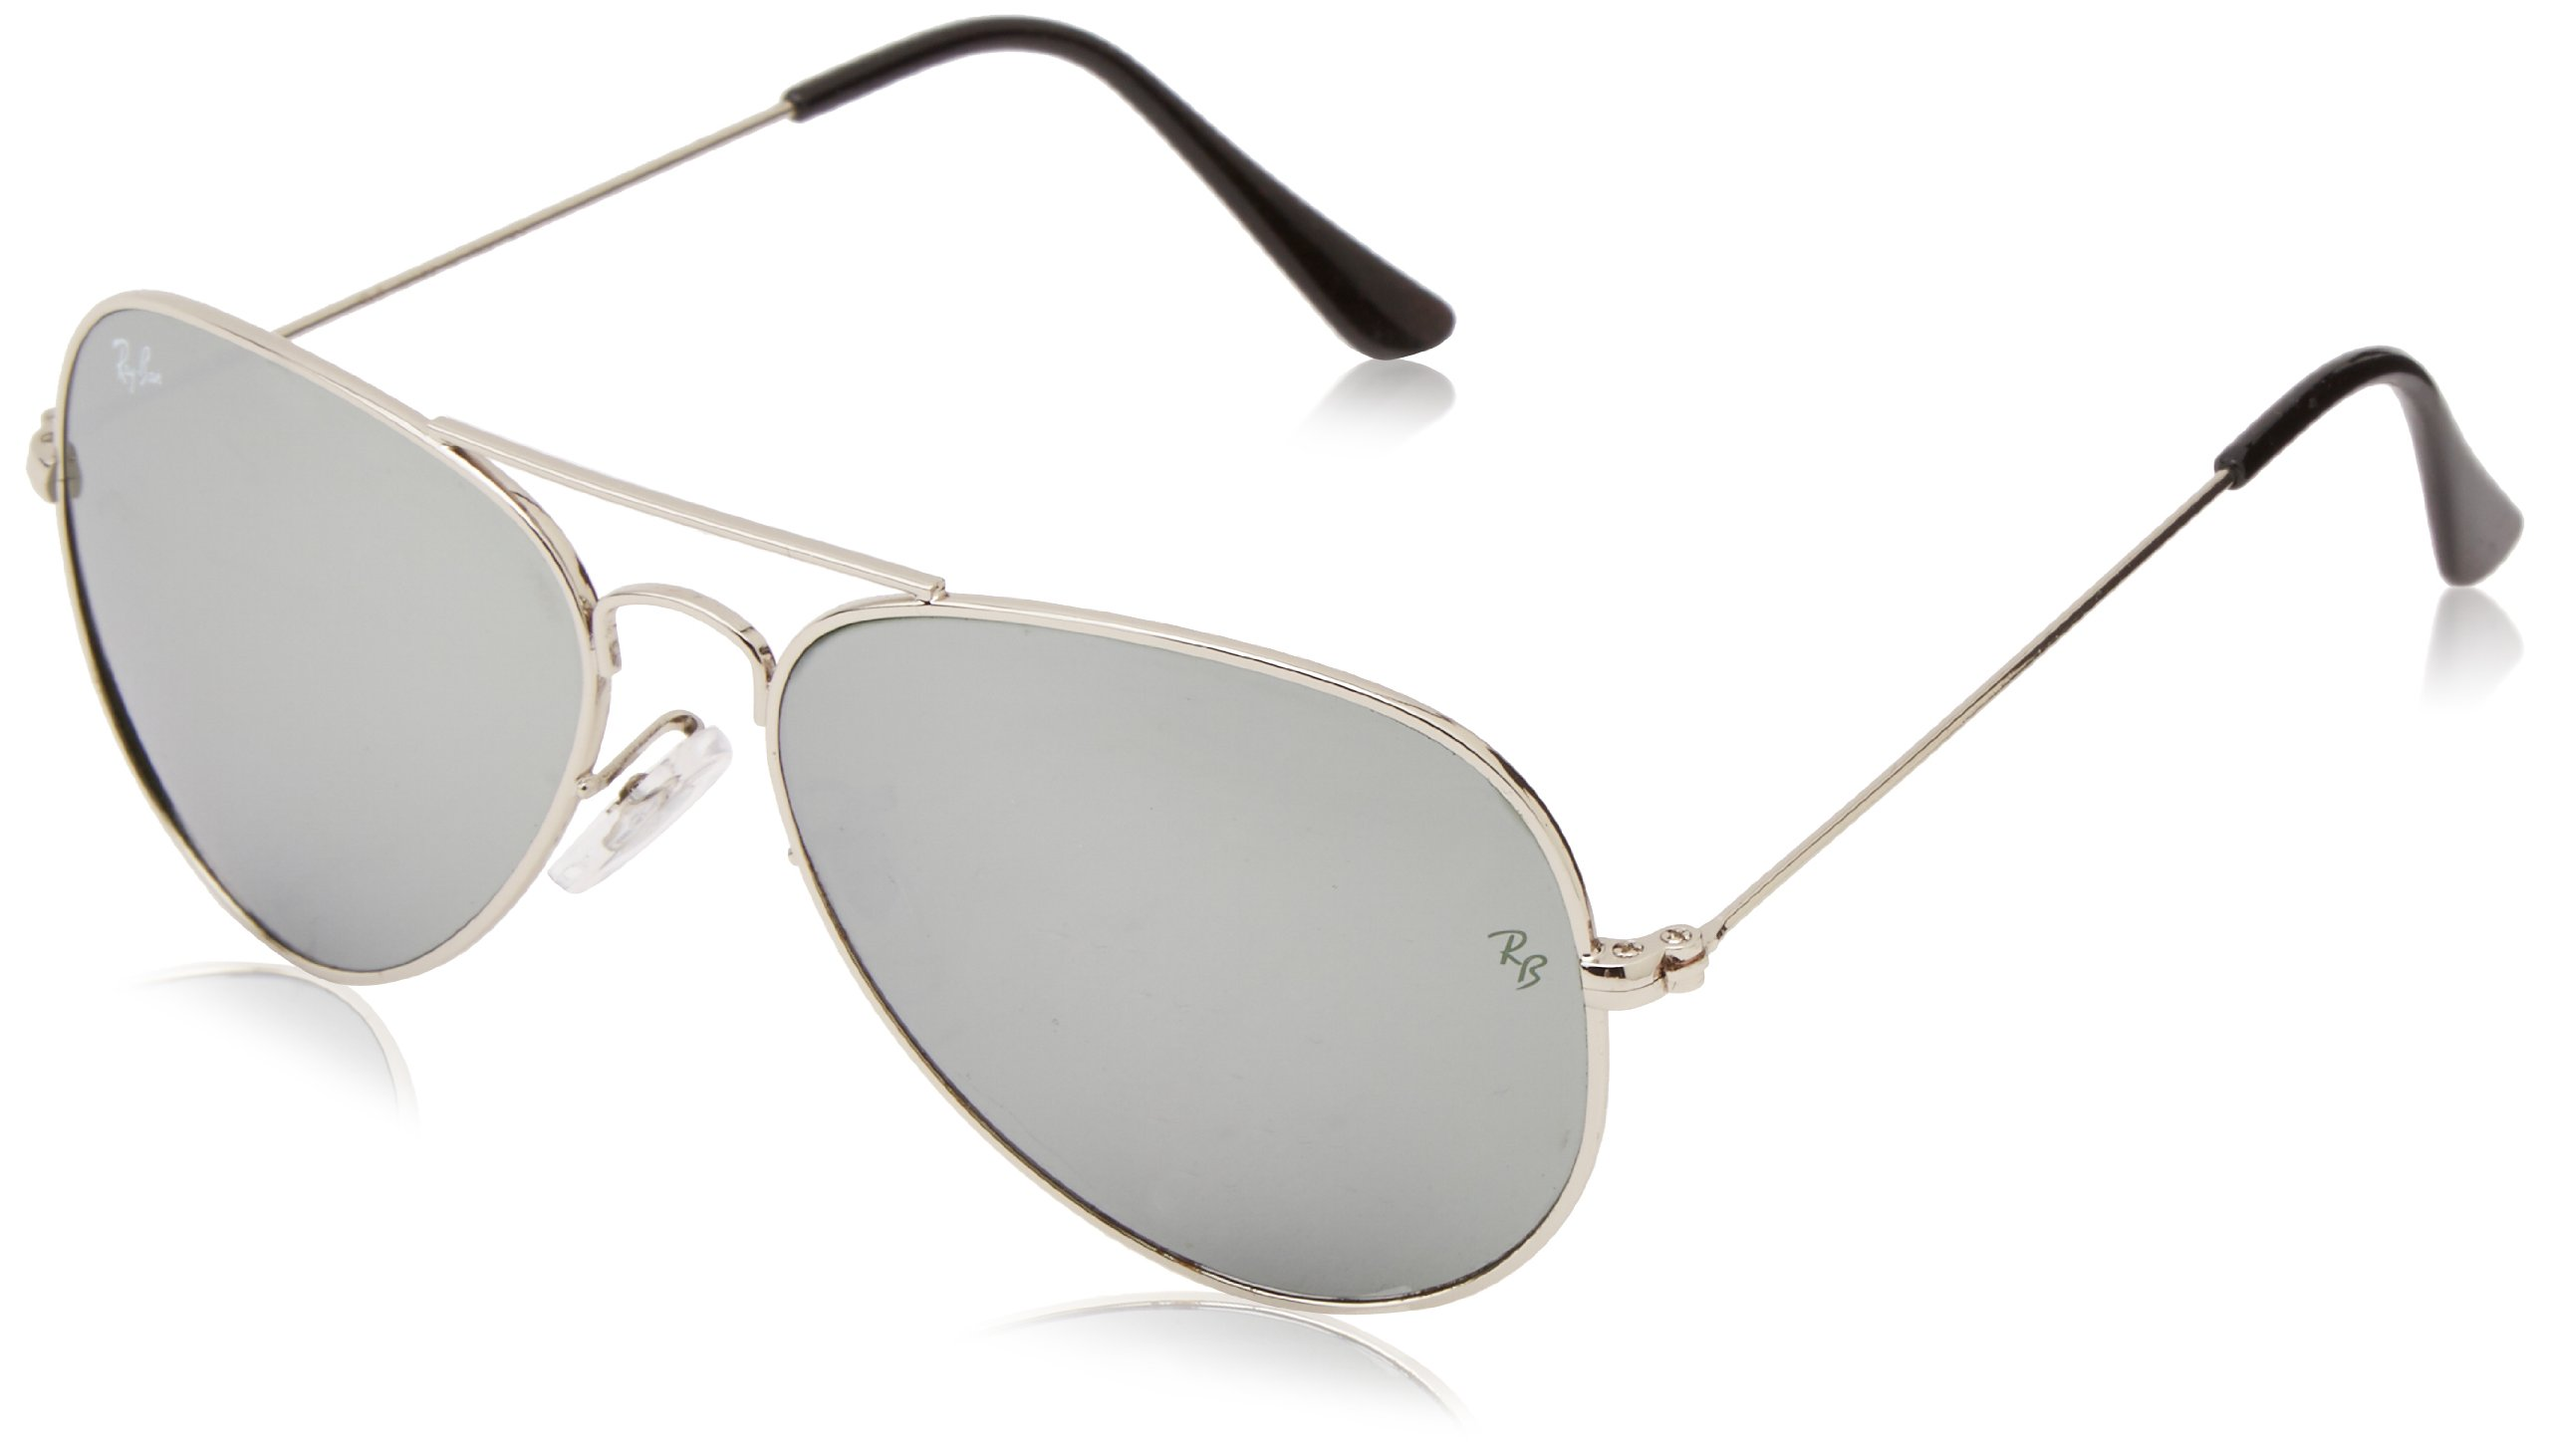 Ray-Ban Aviator Classic, White Metal/ Crystal Grey Gradient, 55mm